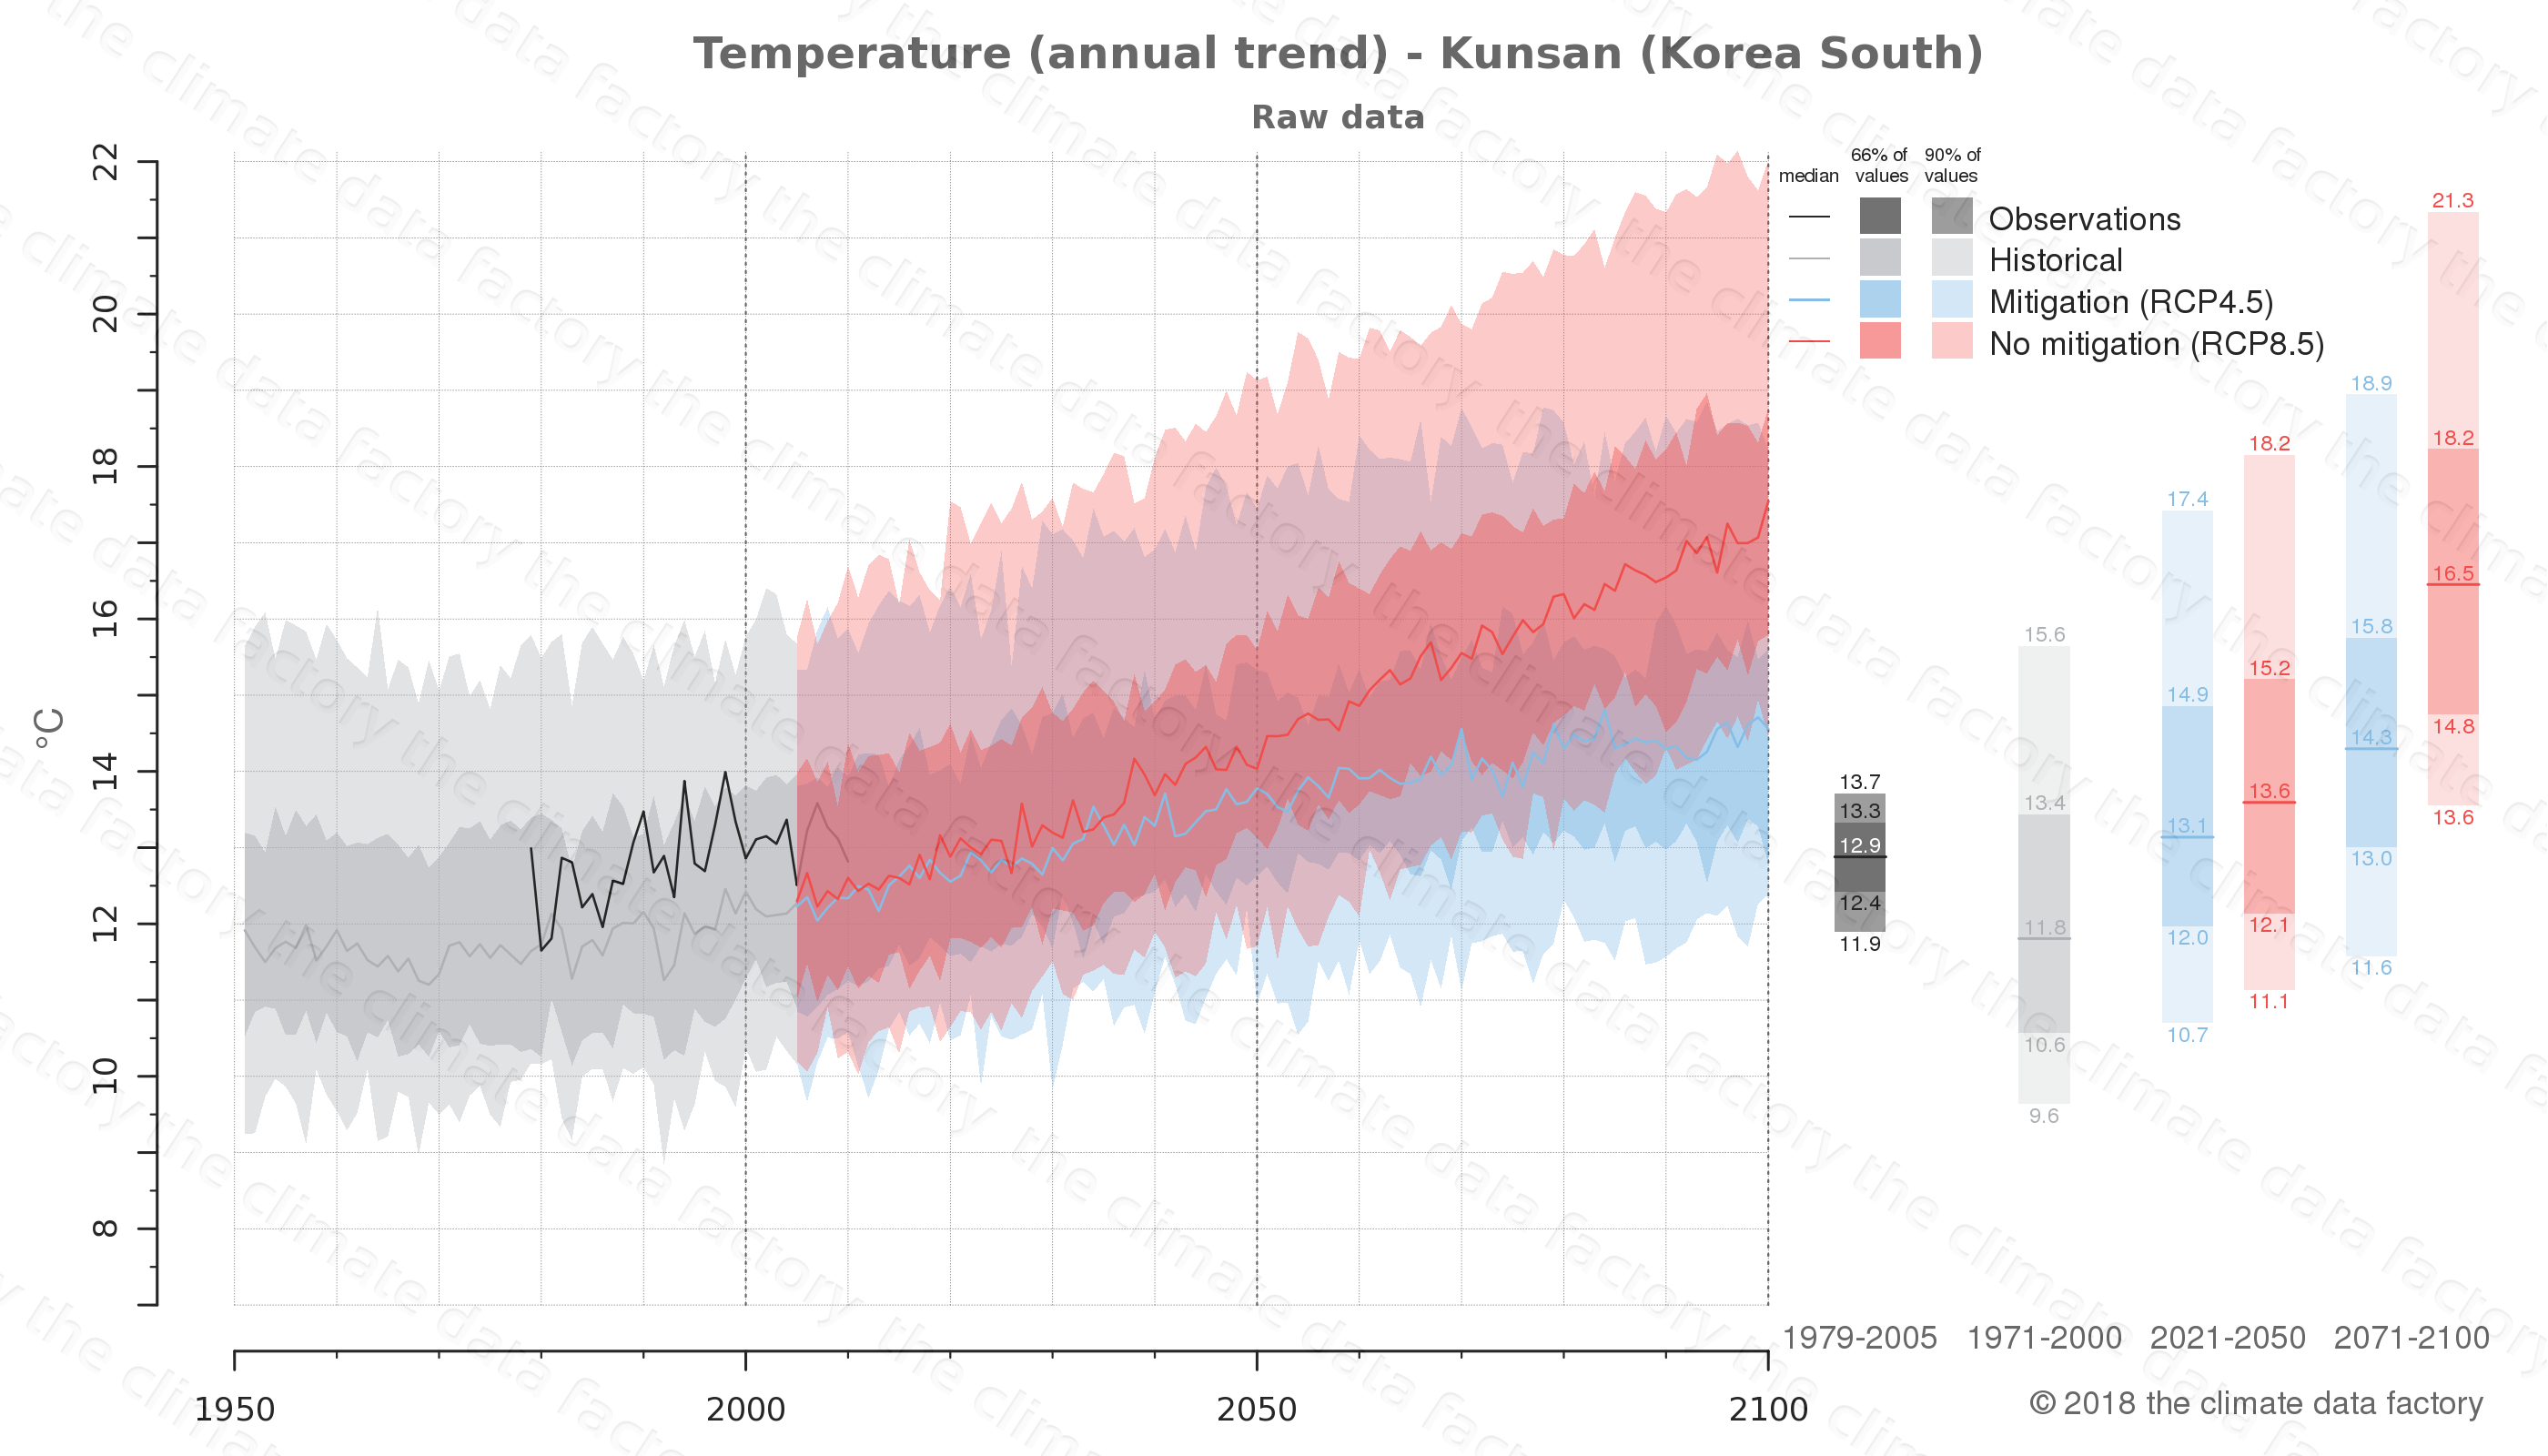 climate change data policy adaptation climate graph city data temperature kunsan south korea